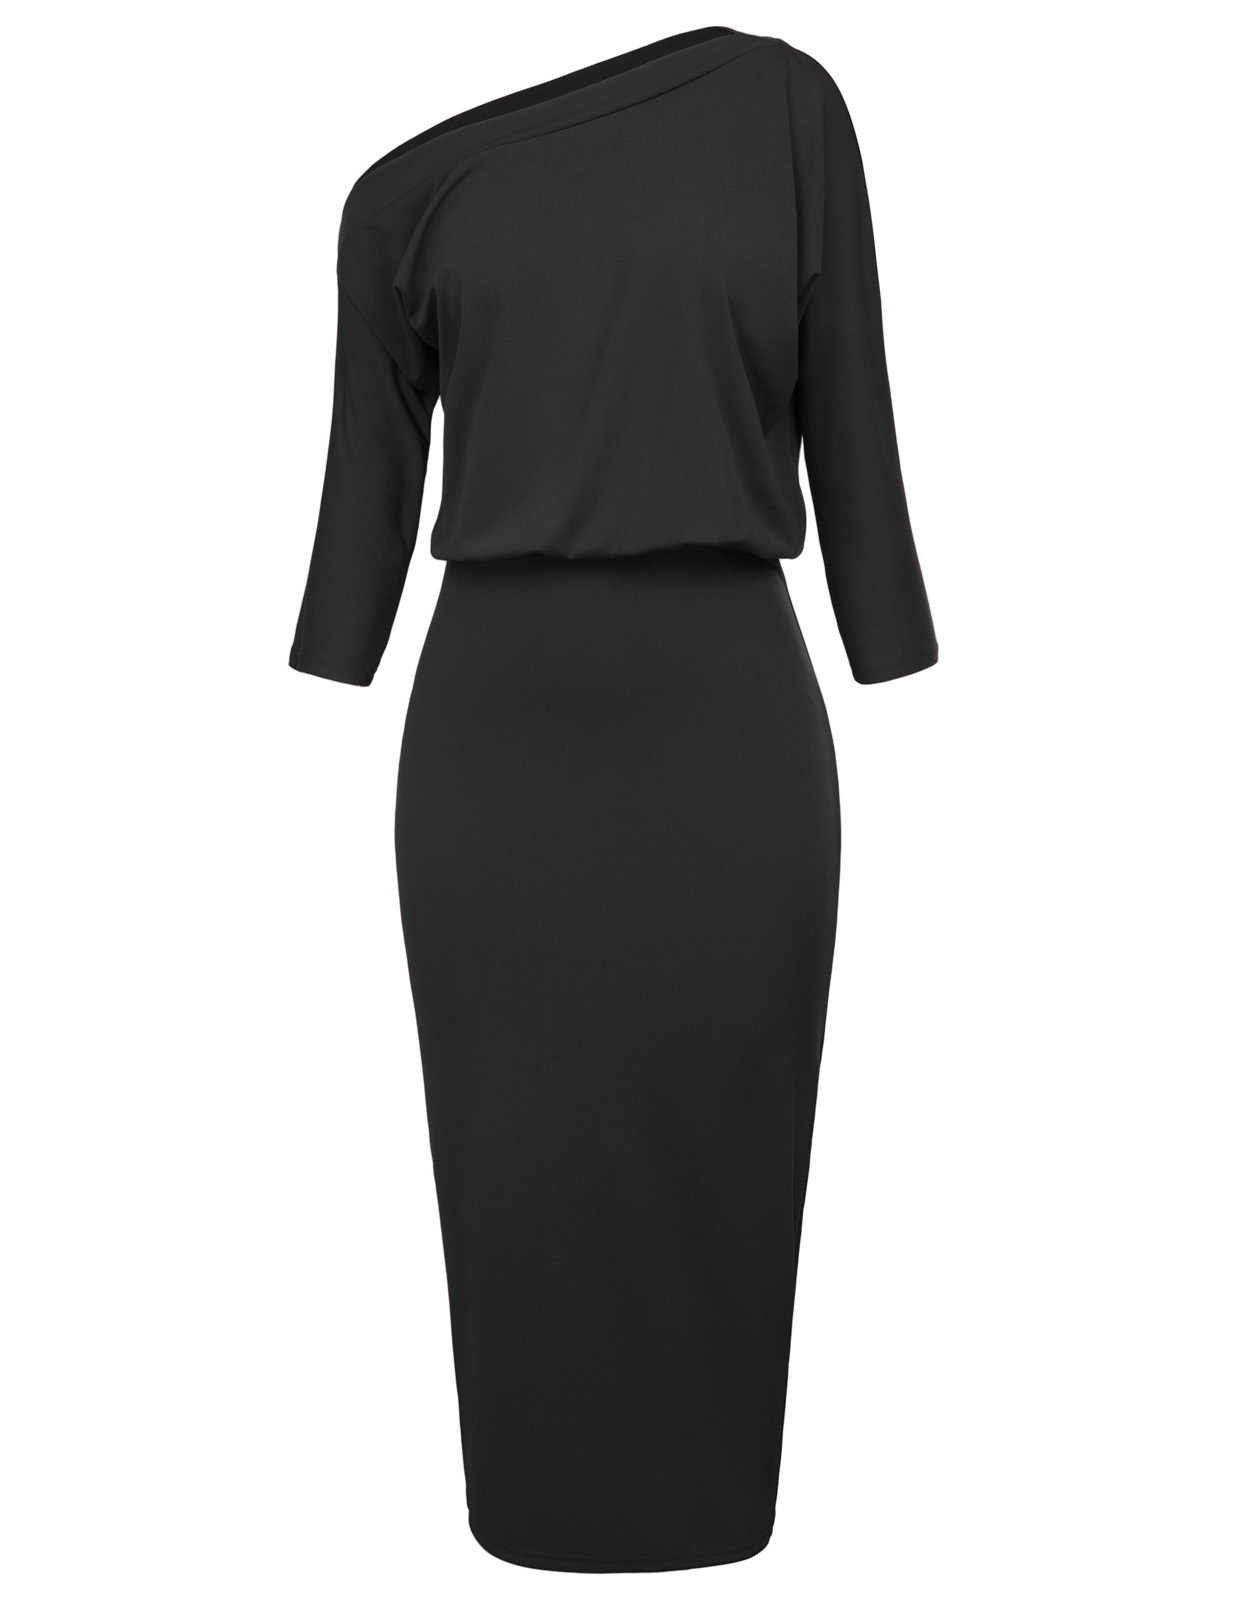 GK Sexy party pencil dress Women classy three quarter sleeve One Shoulder  Hips-Wrapped Bodycon f5e30fddc691